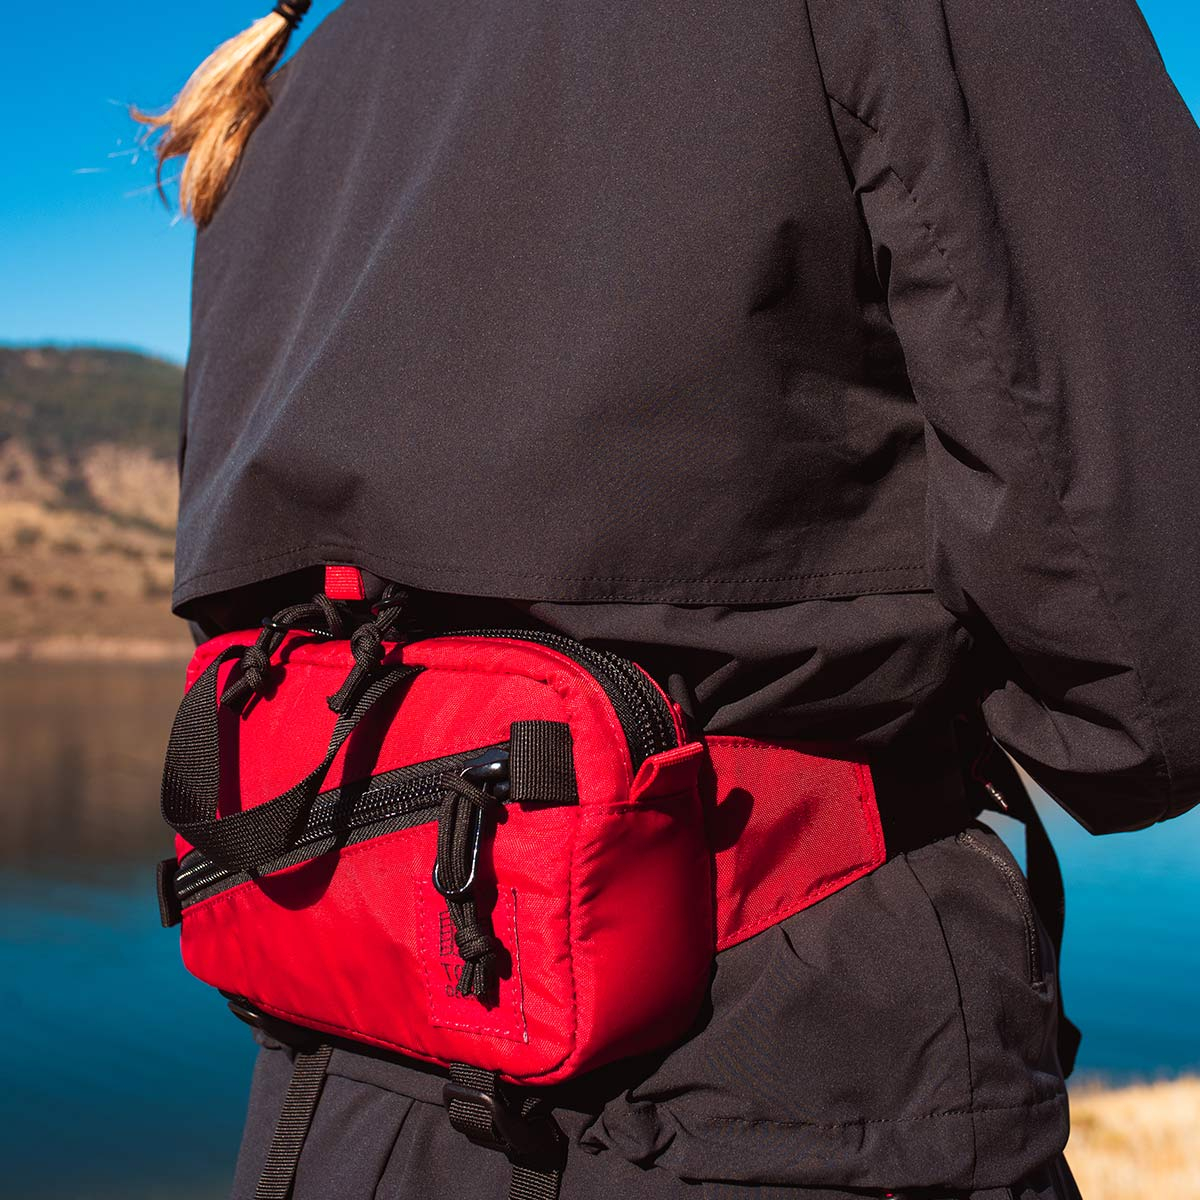 Topo Designs Mini Quick Pack Red, a well-built, secure bag for travel